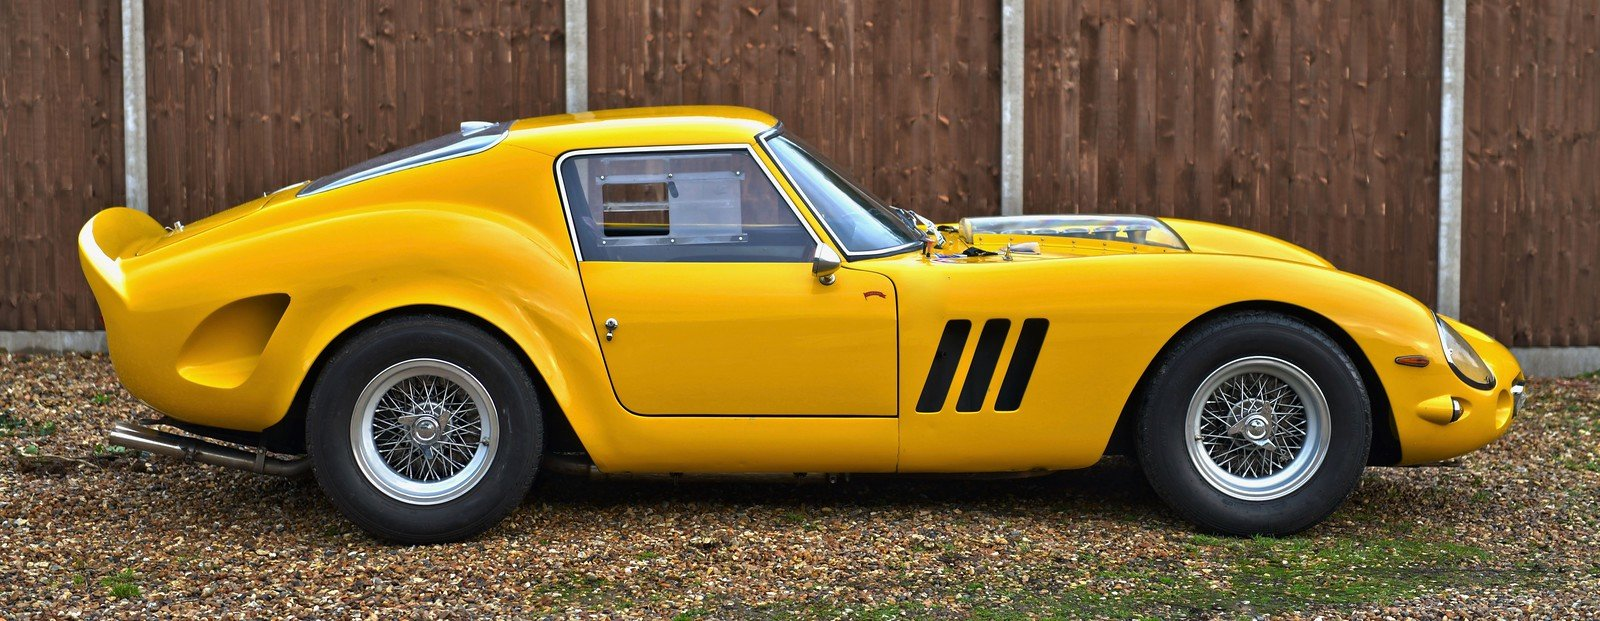 1969 4001 Special with 601hp 575 Maranello V12 Engine For Sale (picture 2 of 6)